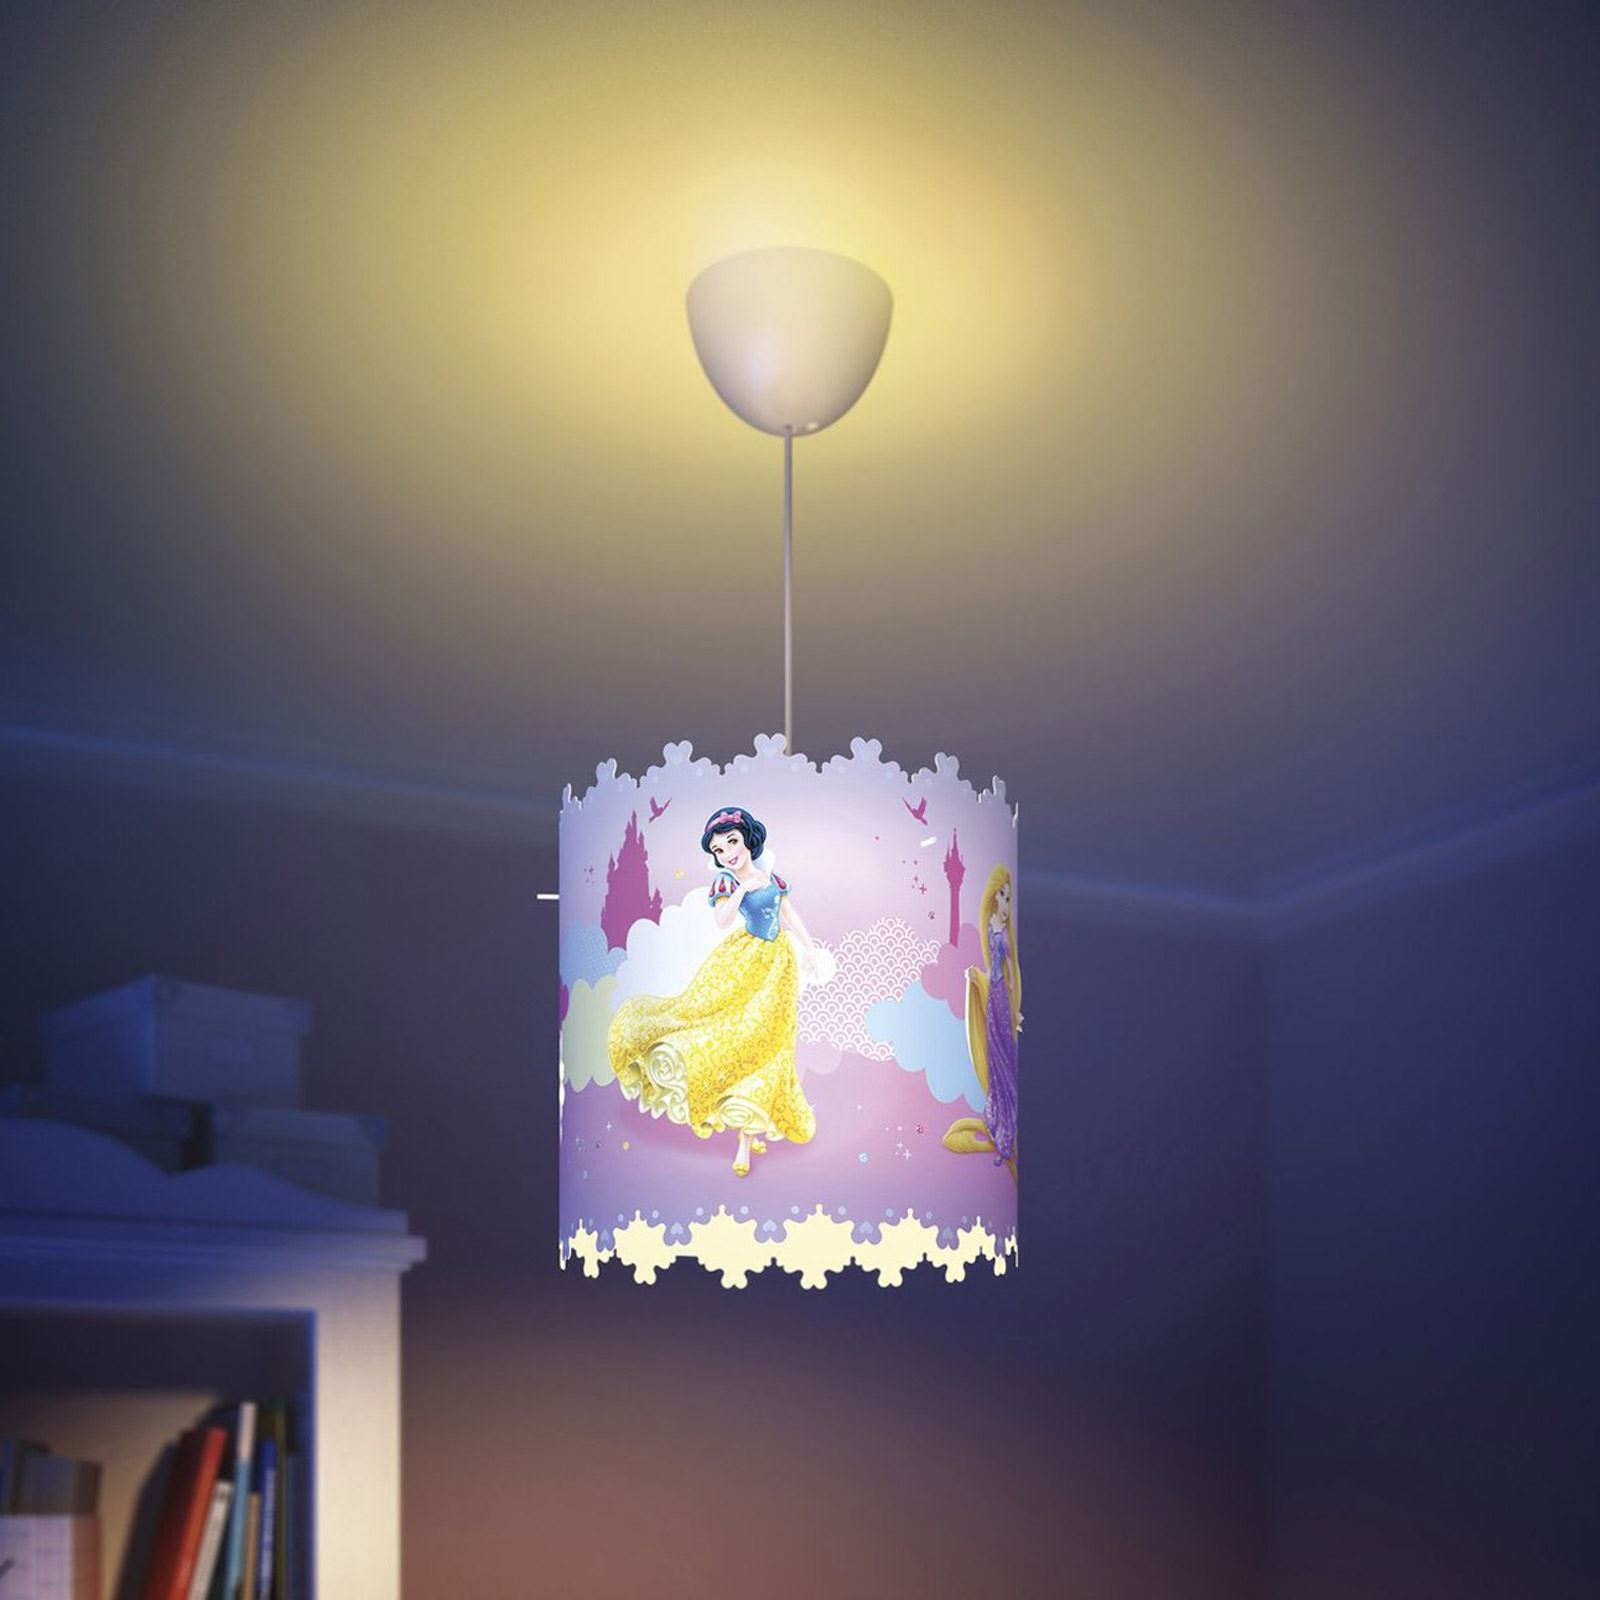 Childrens character disney bedroom lighting ceiling for Kids ceiling lights for bedroom